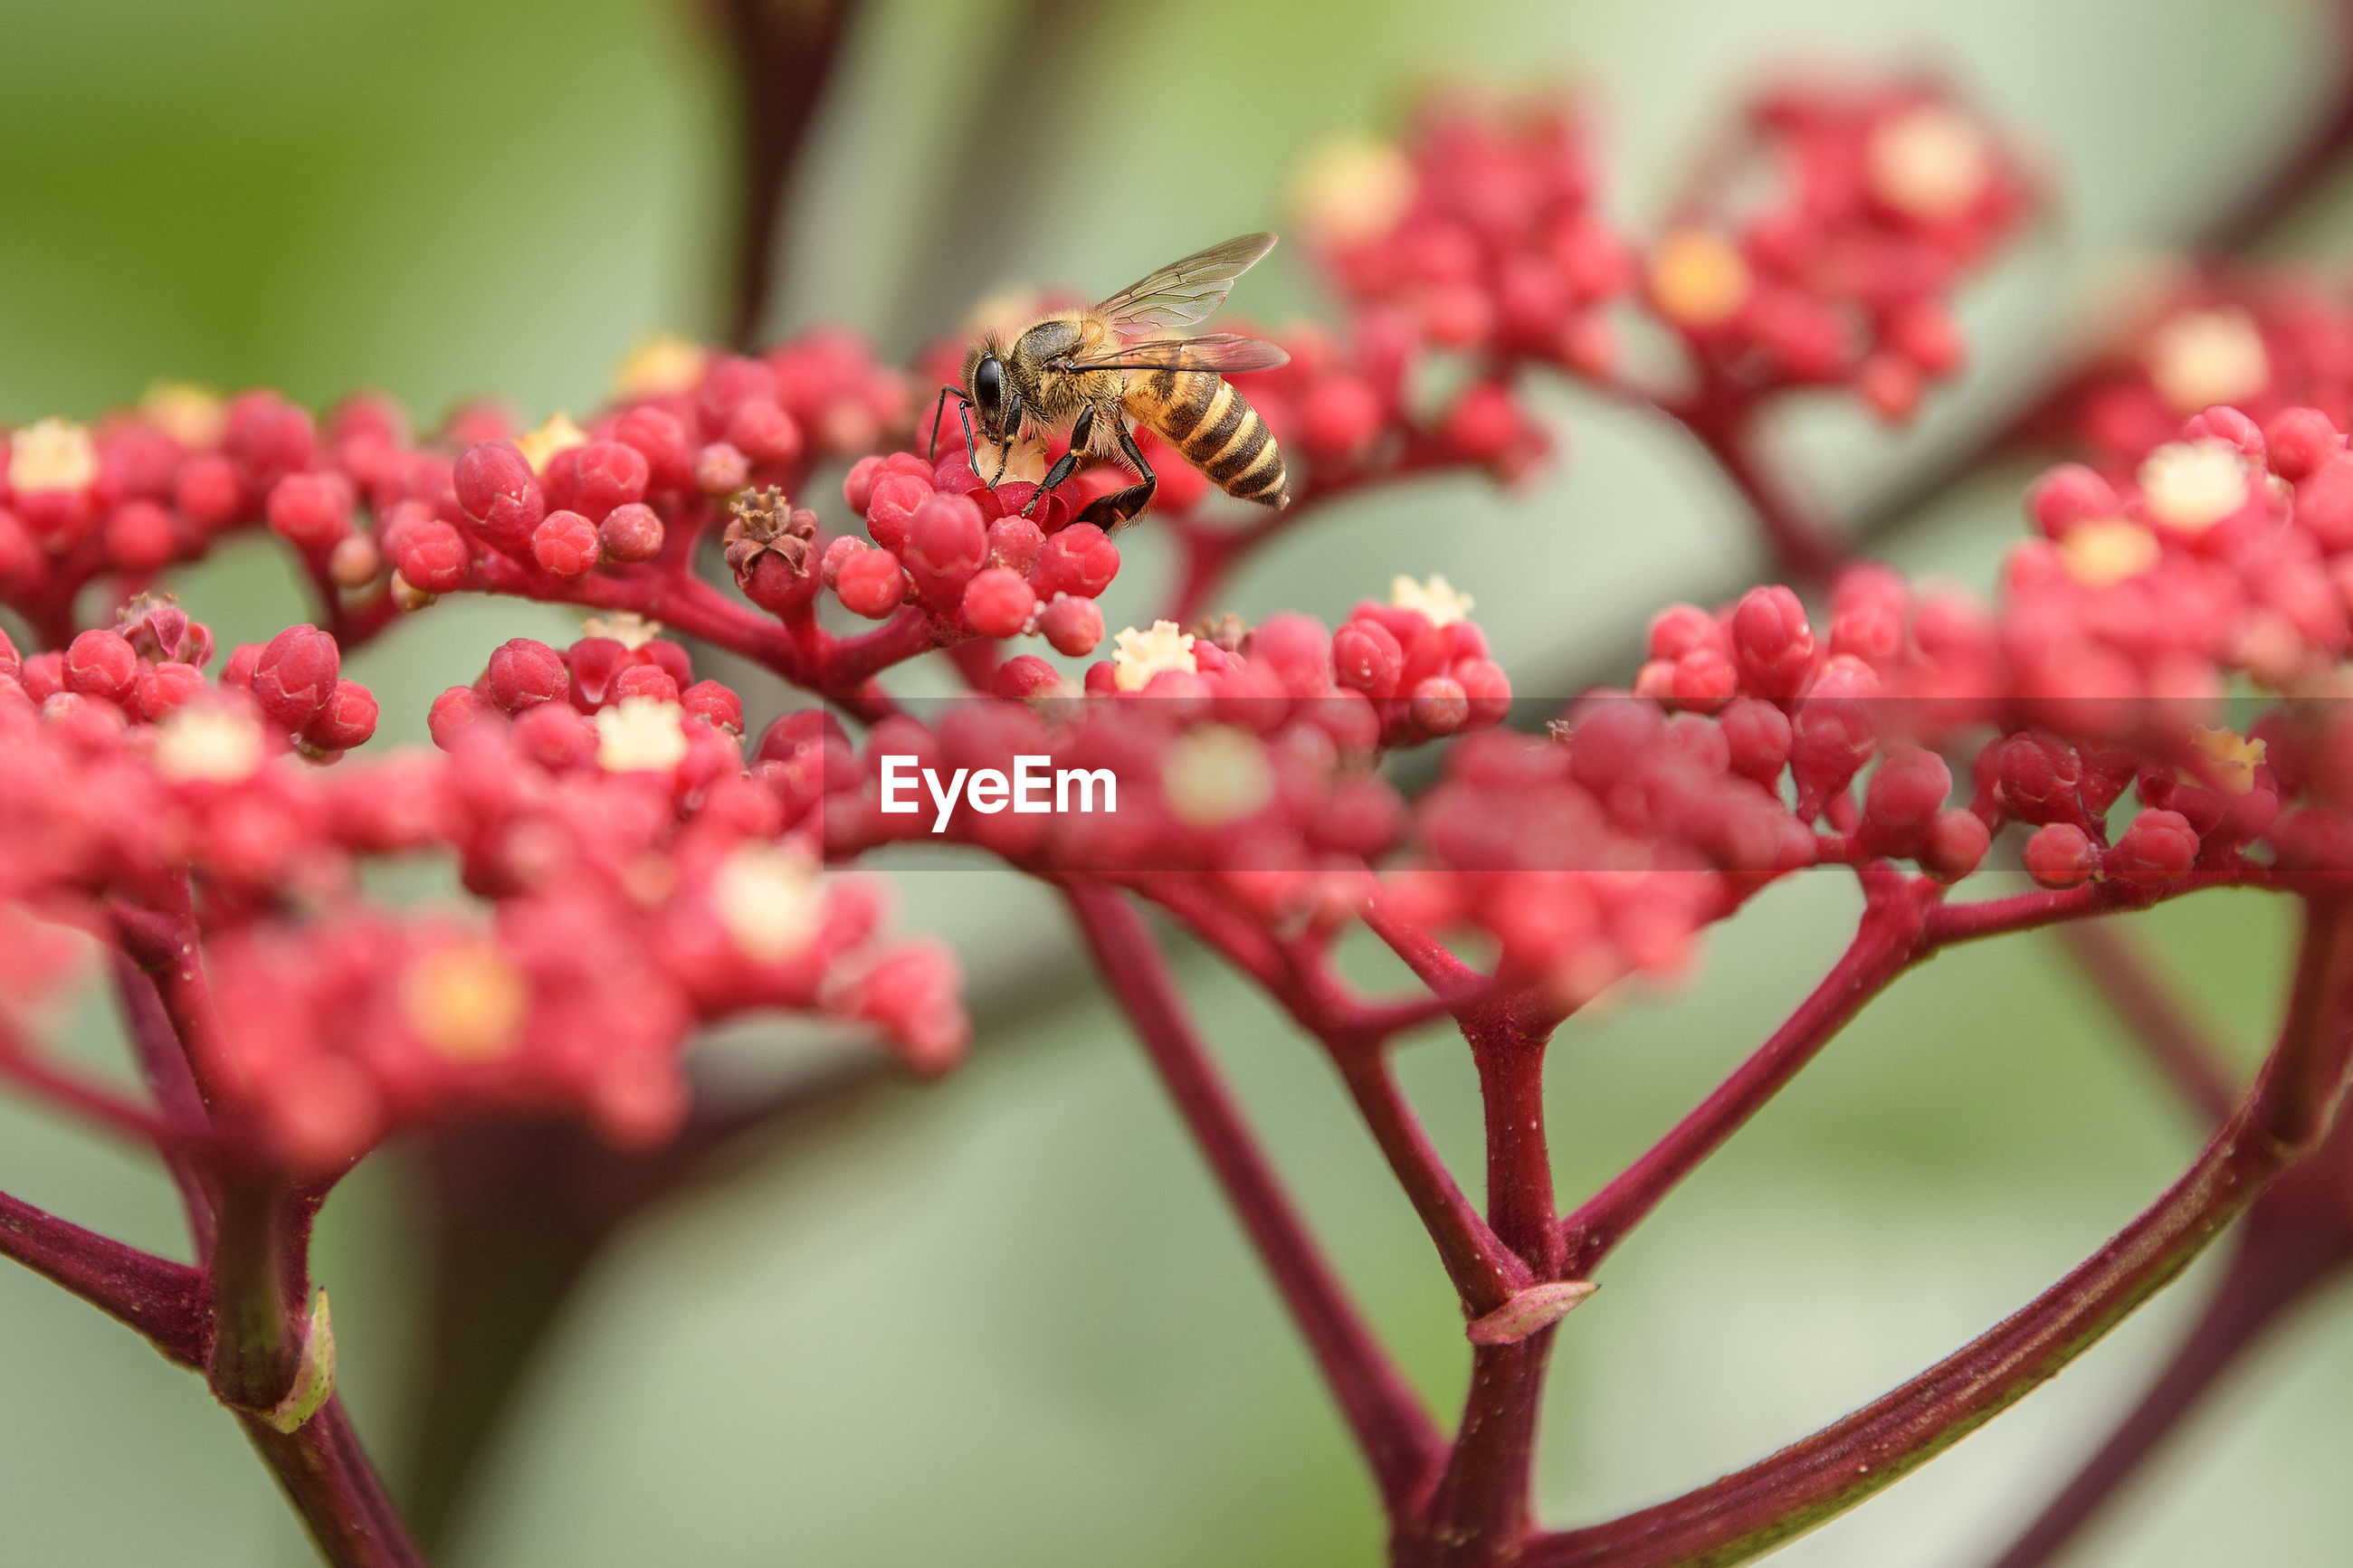 Close-up of bee pollinating red flowers